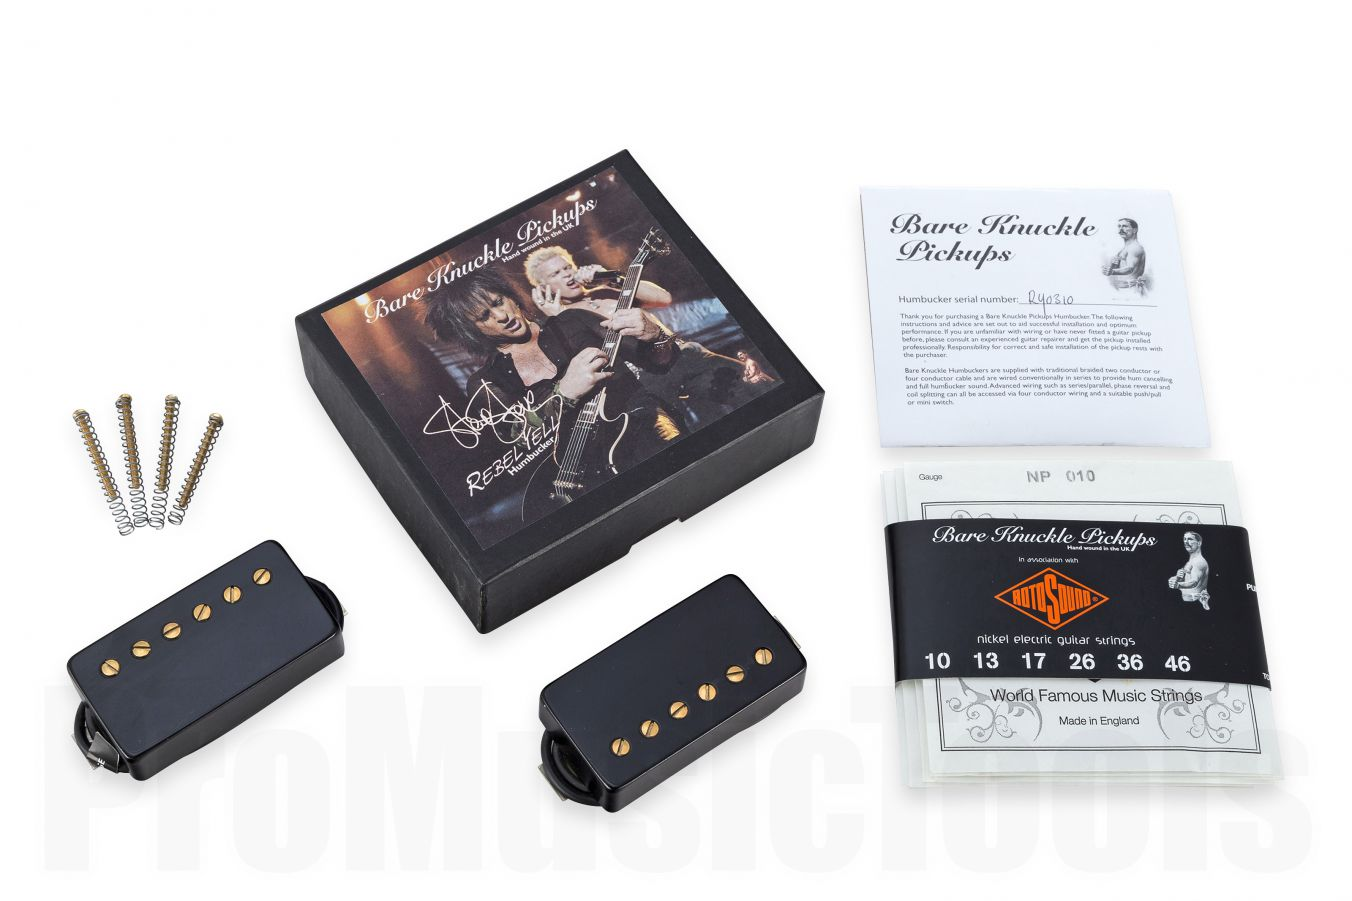 Bare Knuckle Pickups Rebel Yell Calibrated Covered Set - Black with Gold Screws